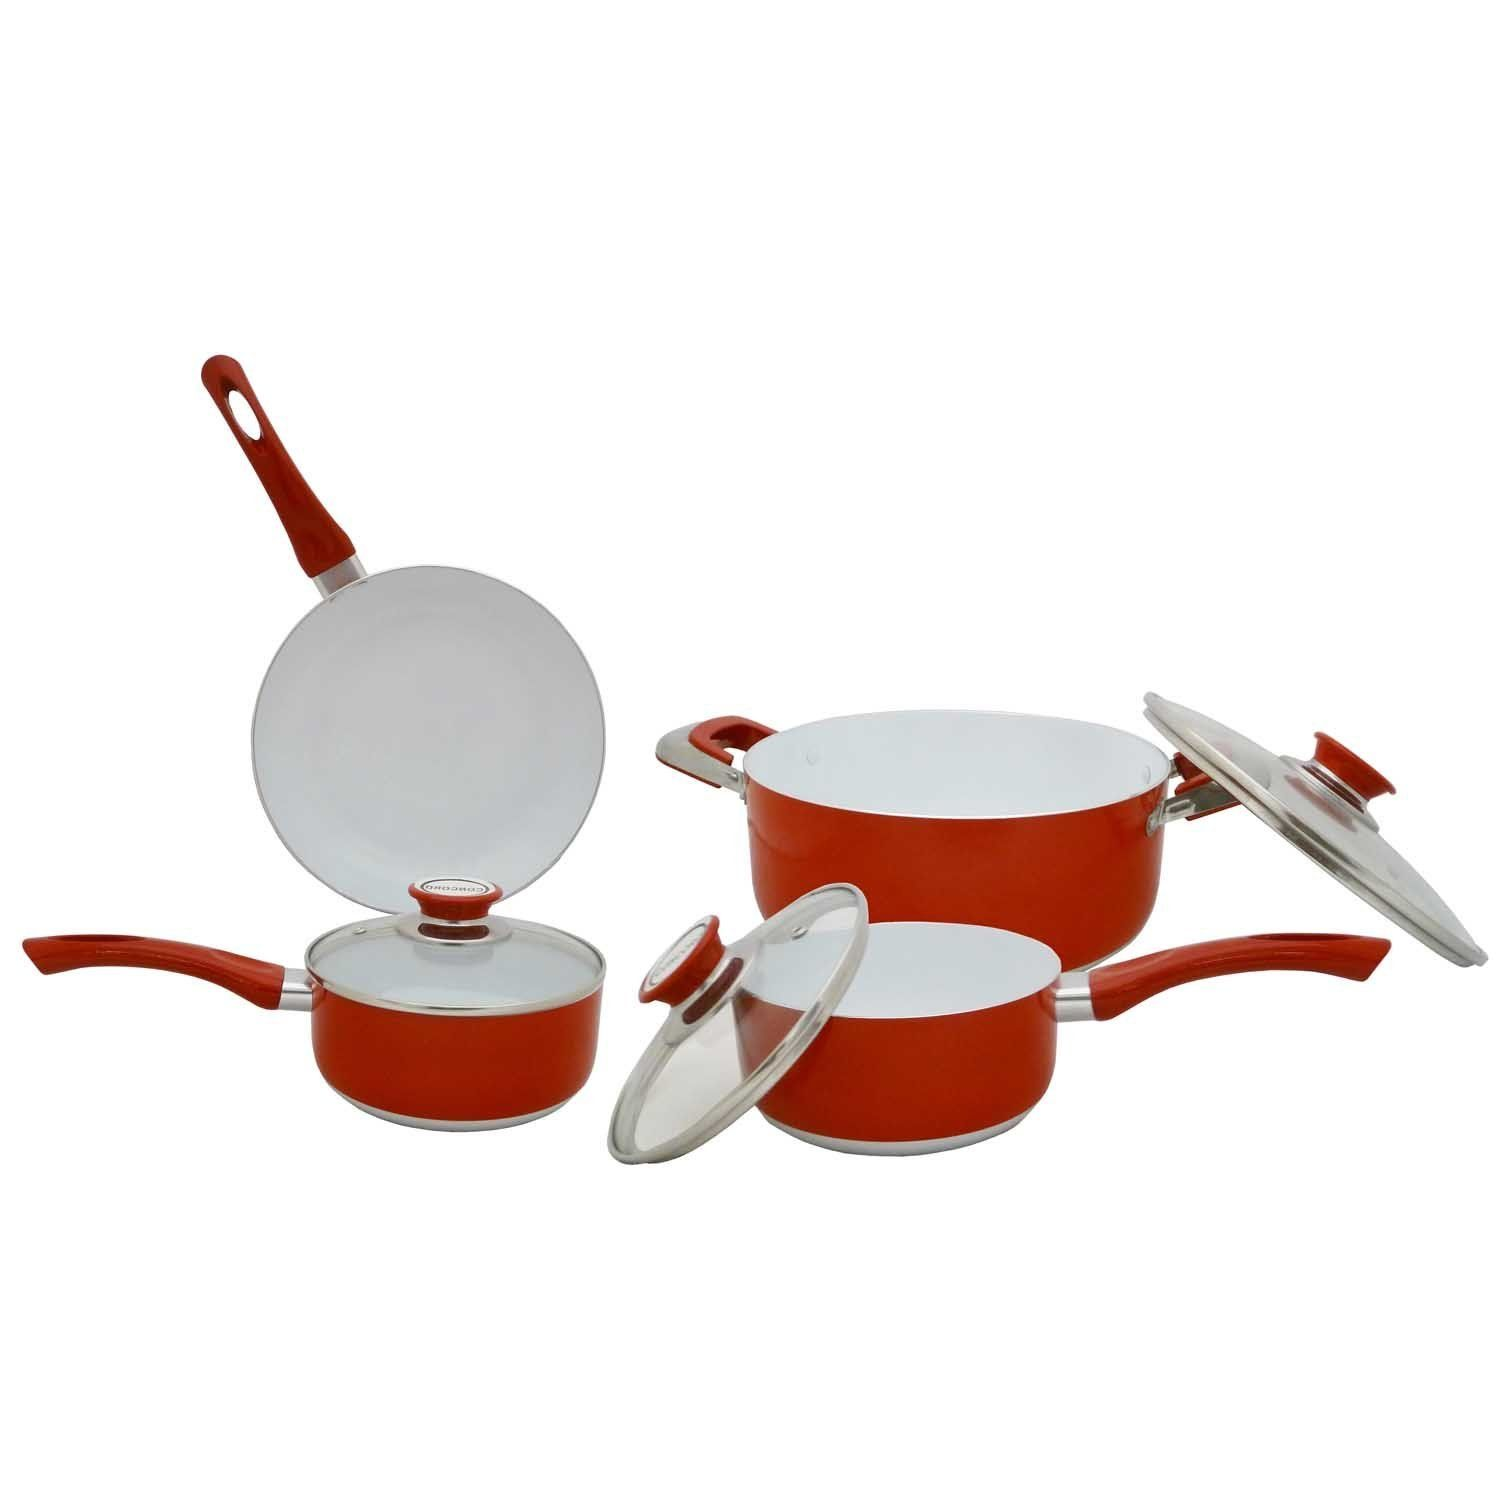 Cookware gt see more select by calphalon ceramic nonstick 8 inch an - Concord Cookware Cn700 7 Piece Eco Healthy Ceramic Nonstick Cookware Set Find